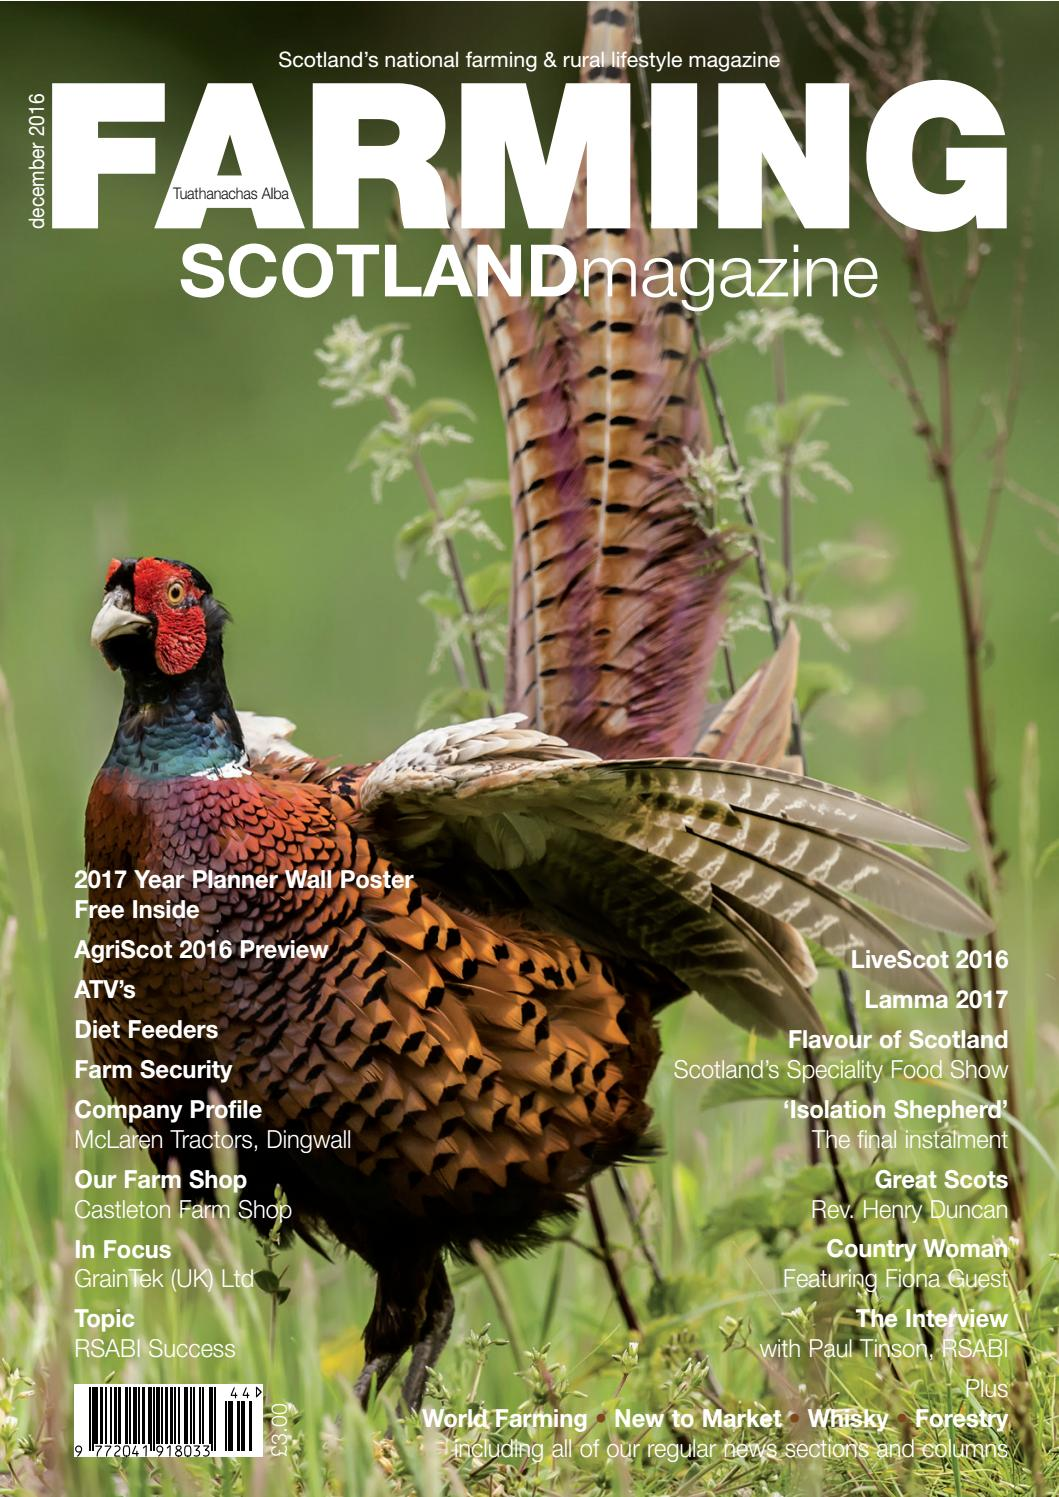 Farming Scotland Magazine November December 2016 By Athole April 14 2009 Circuitmaster 15 Comments Design Publishing Ltd Issuu